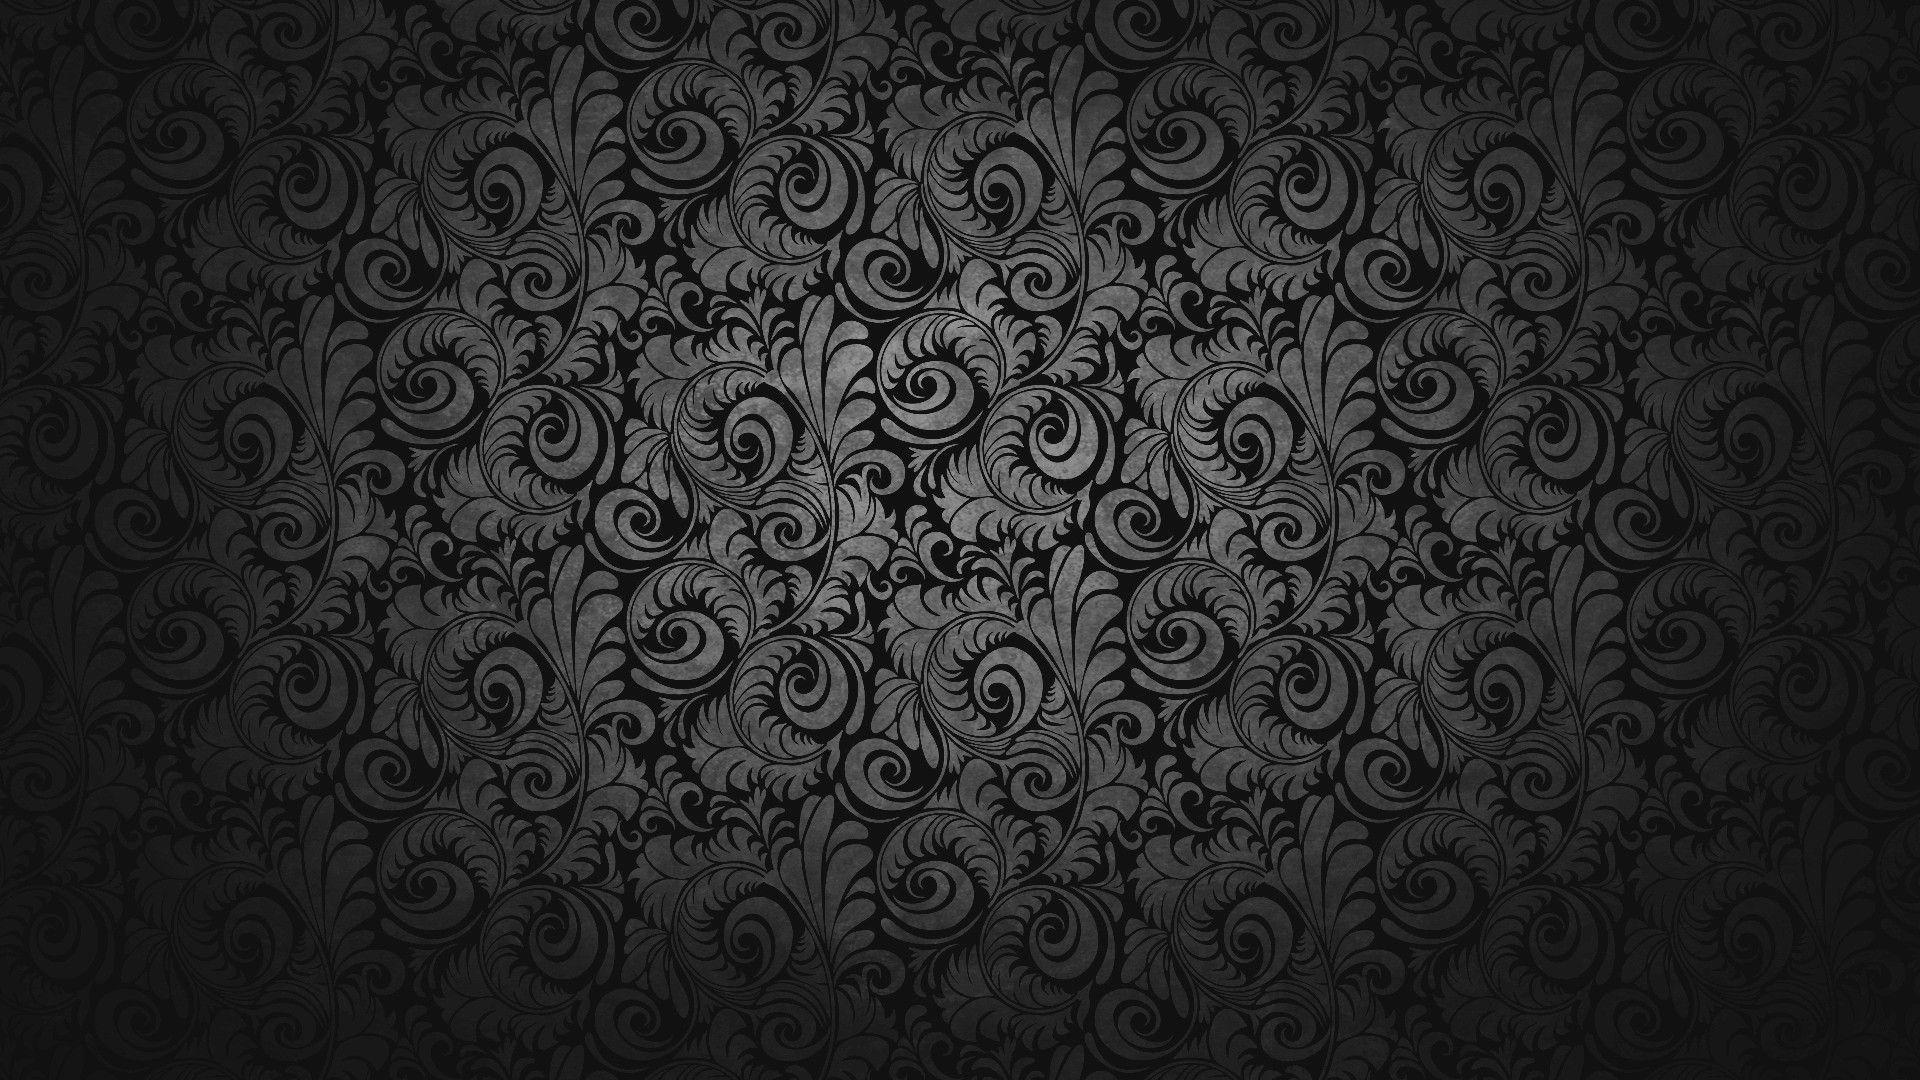 Black And White 1080p Wallpapers